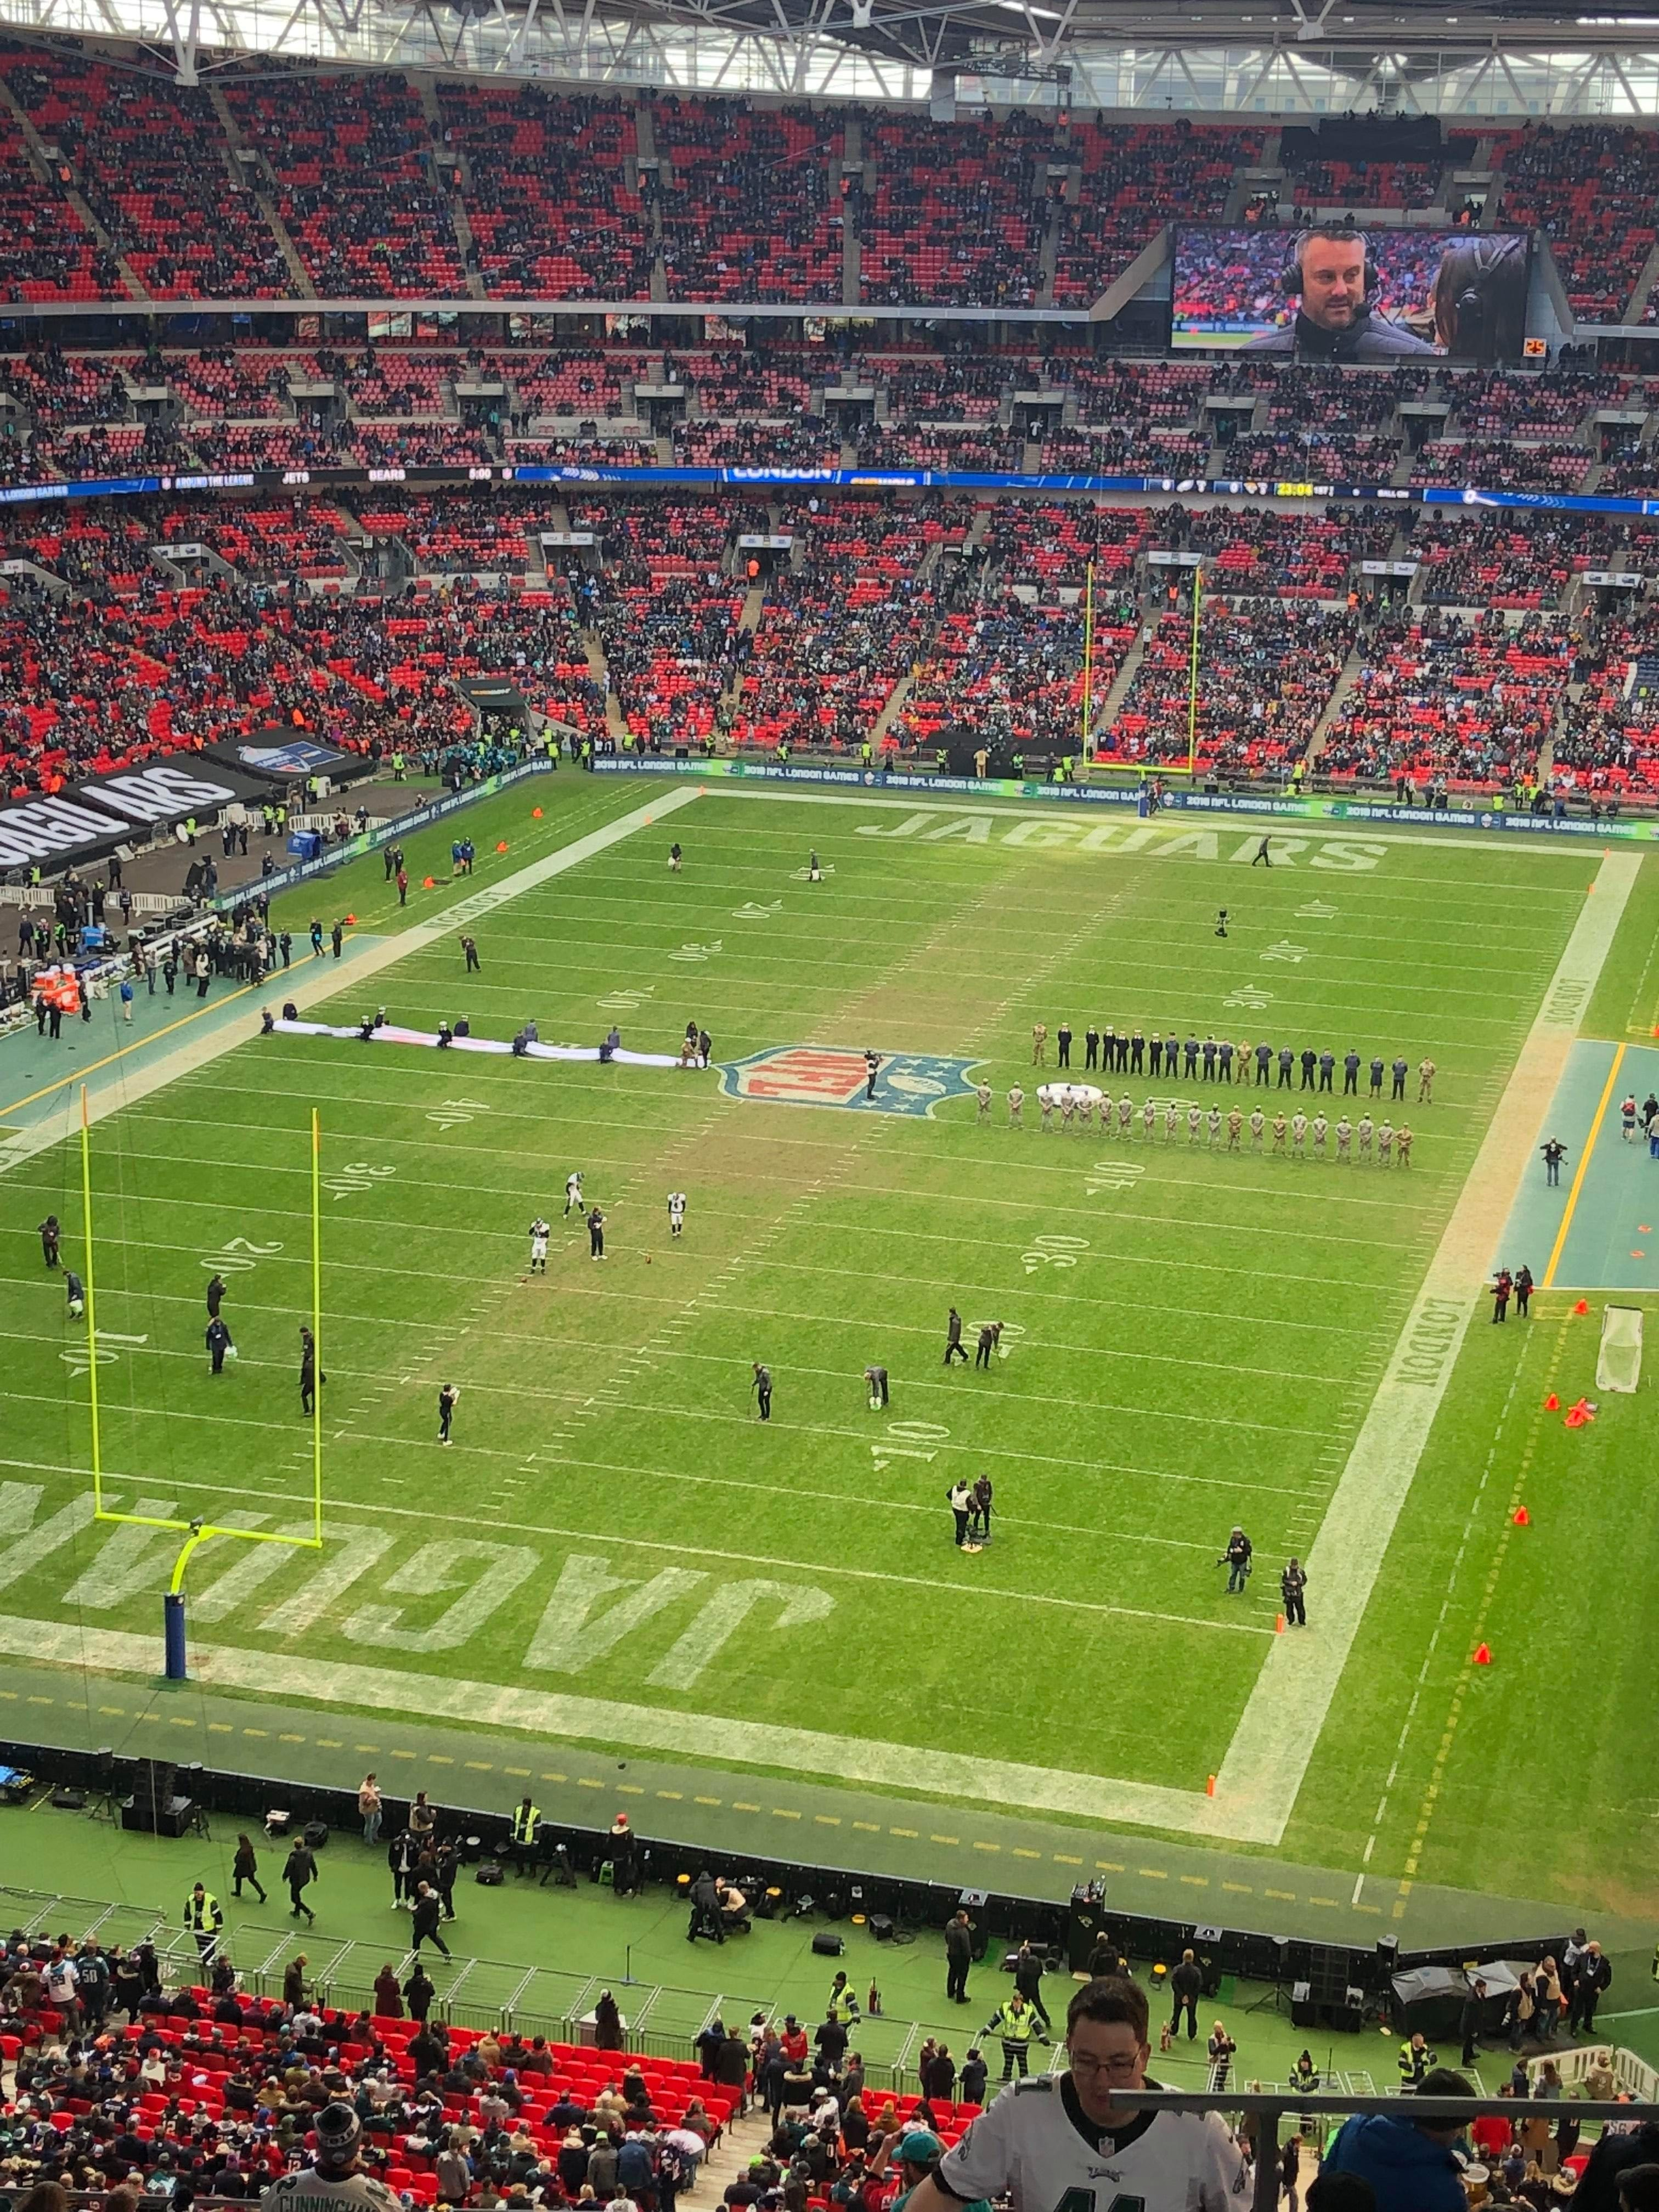 Football fans have also mocked the poor state of the Wembley pitch